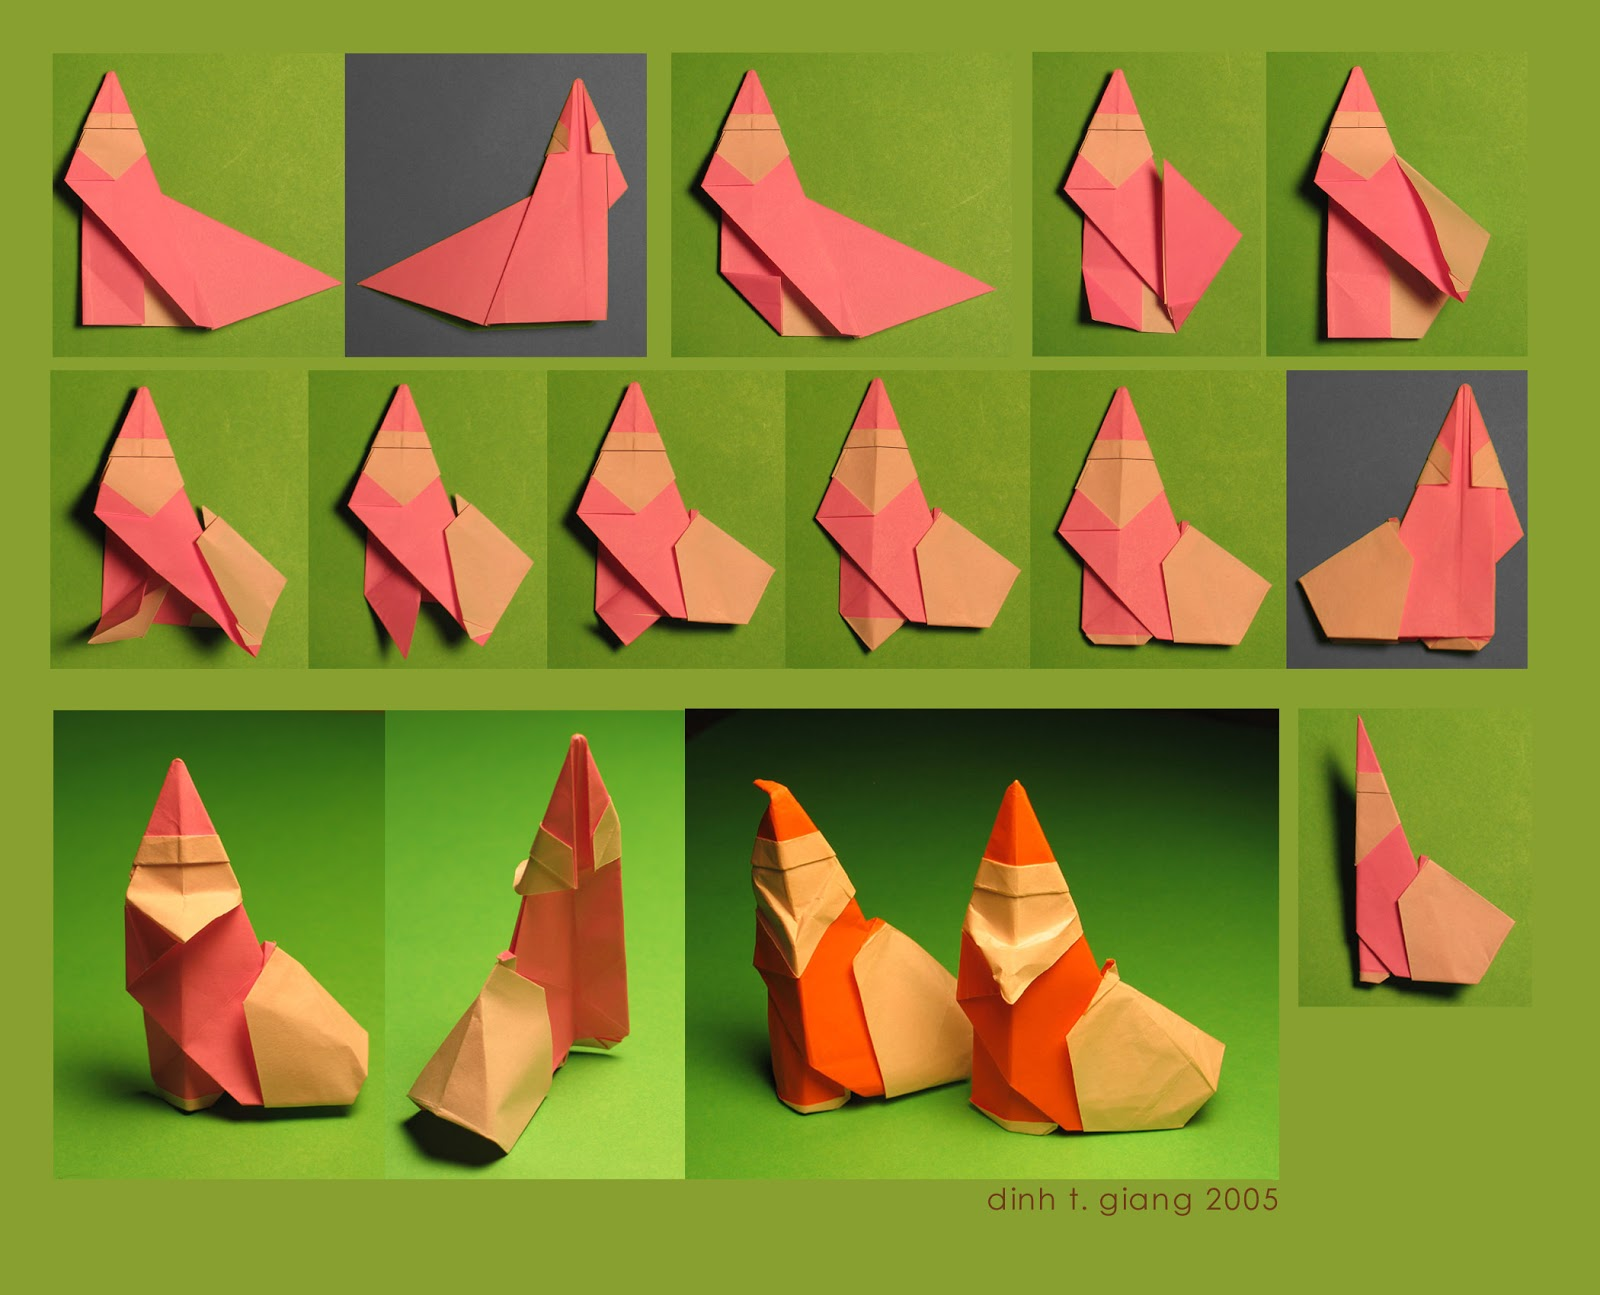 Tutorial Origami Handmade How To Make With Tutorials Cek Link Instructions By Wakeangel2001 On Deviantart 1 Giang Dinh